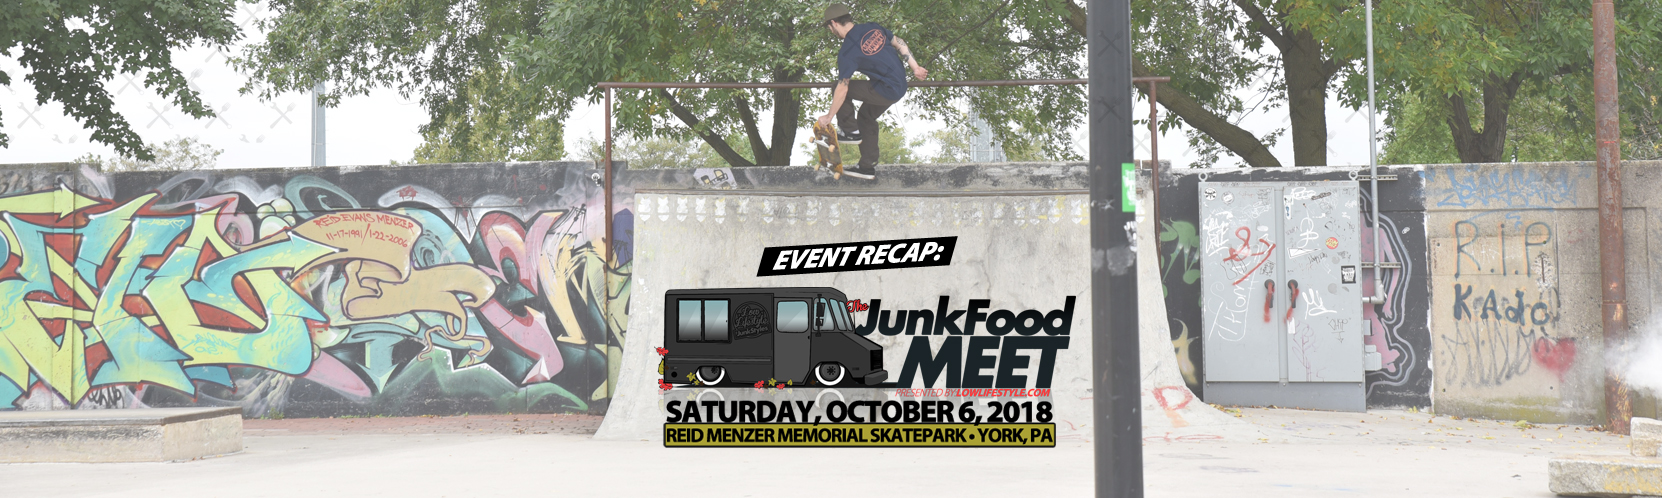 JFM-fall-york-18-recap